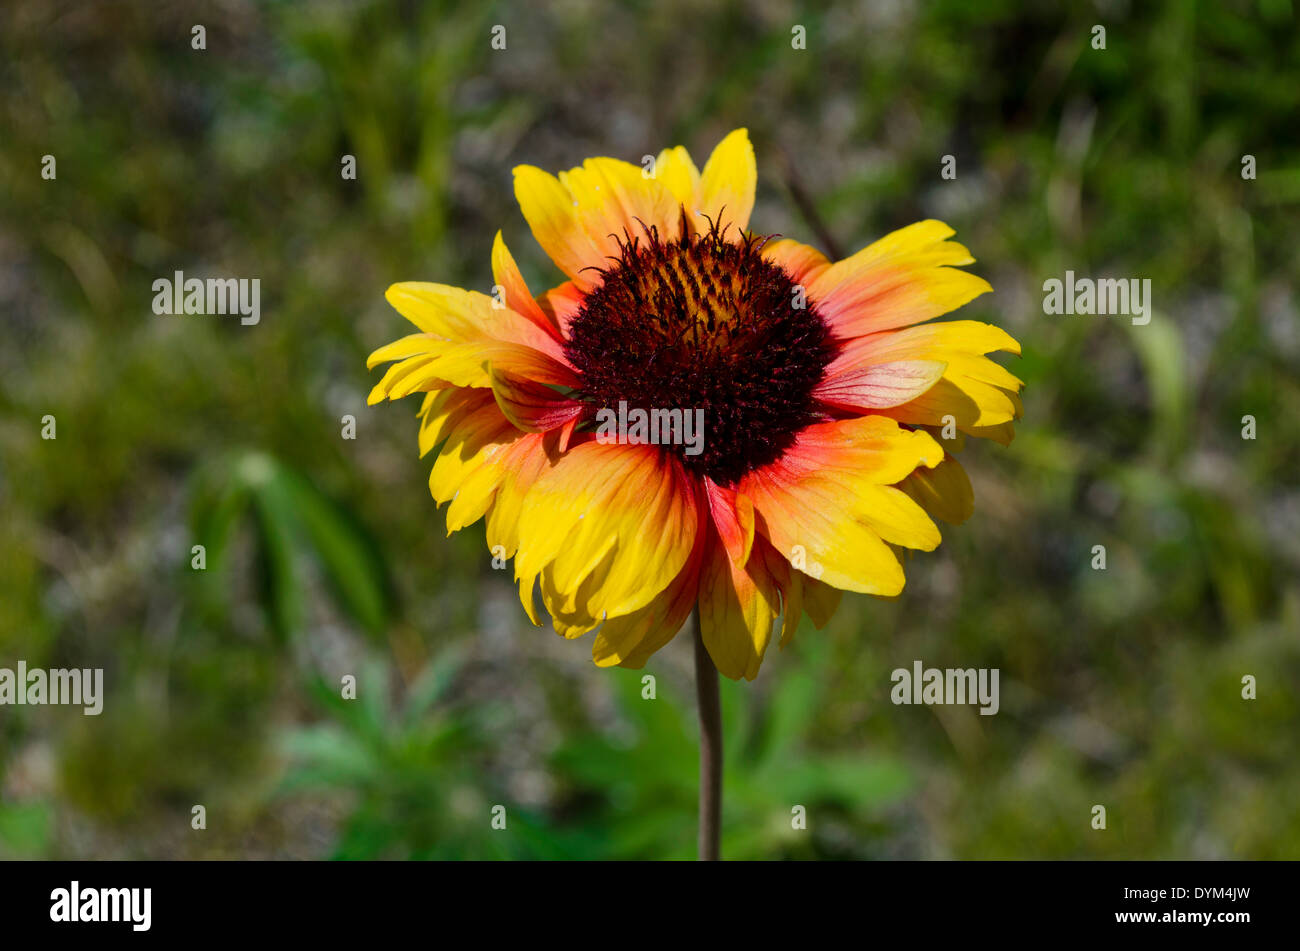 Single flower of the Firewheel or Indian Blanket (Gaillardia pulchella), a wildflower of the Aster family.  British Columbia, CA - Stock Image